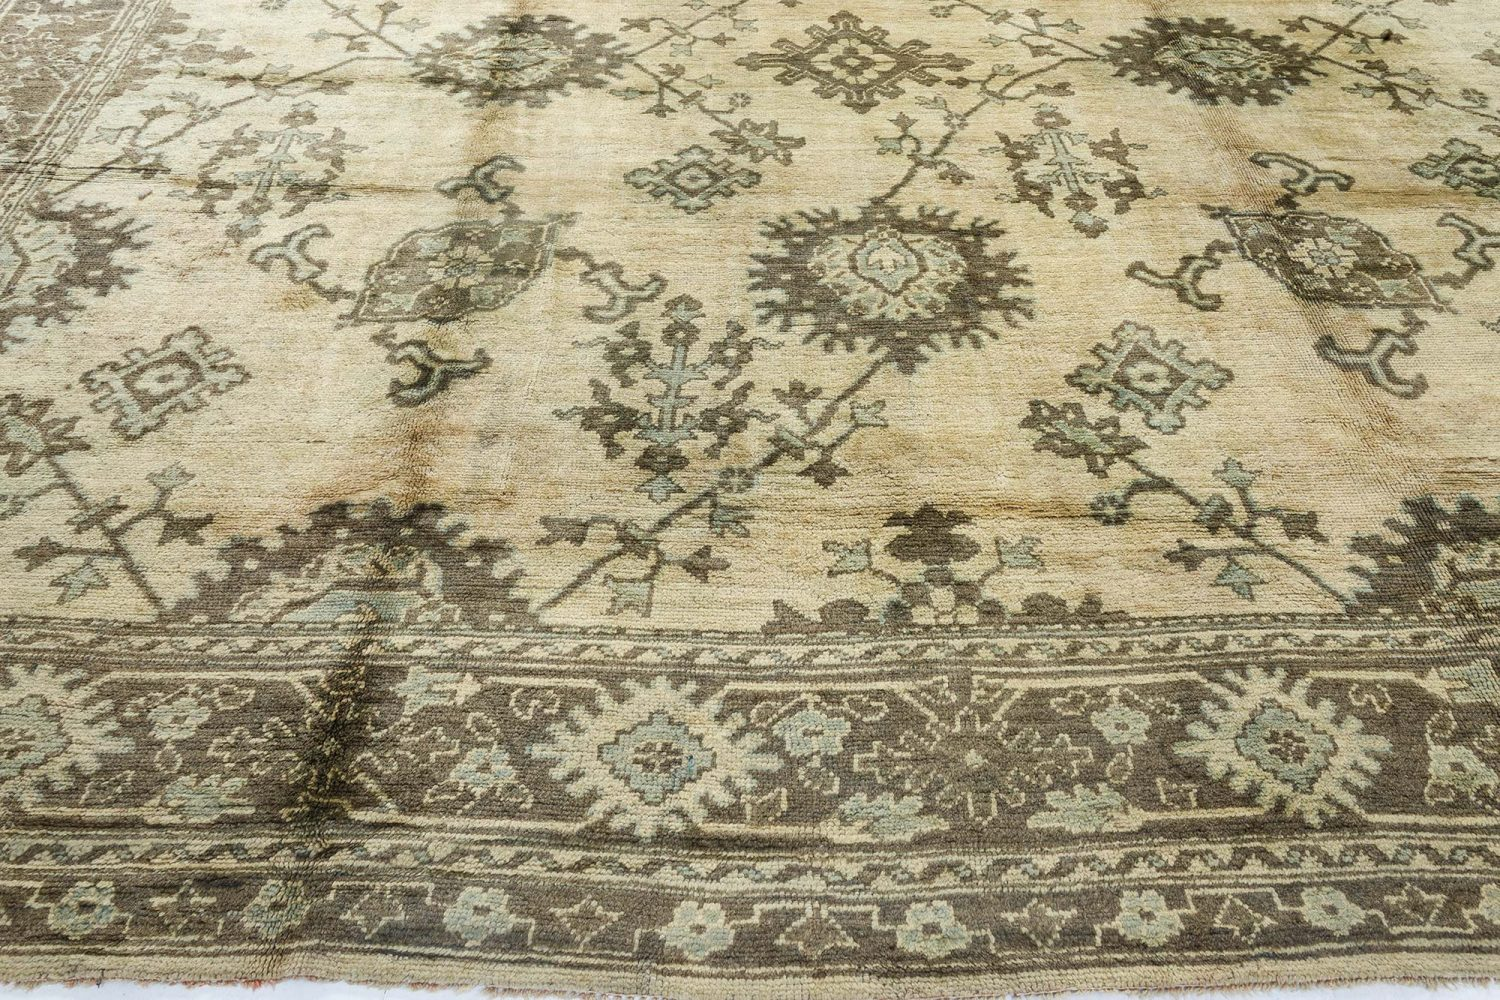 Turkish Oushak Beige, Dark and Light Moss Green Handwoven Wool Rug BB7167